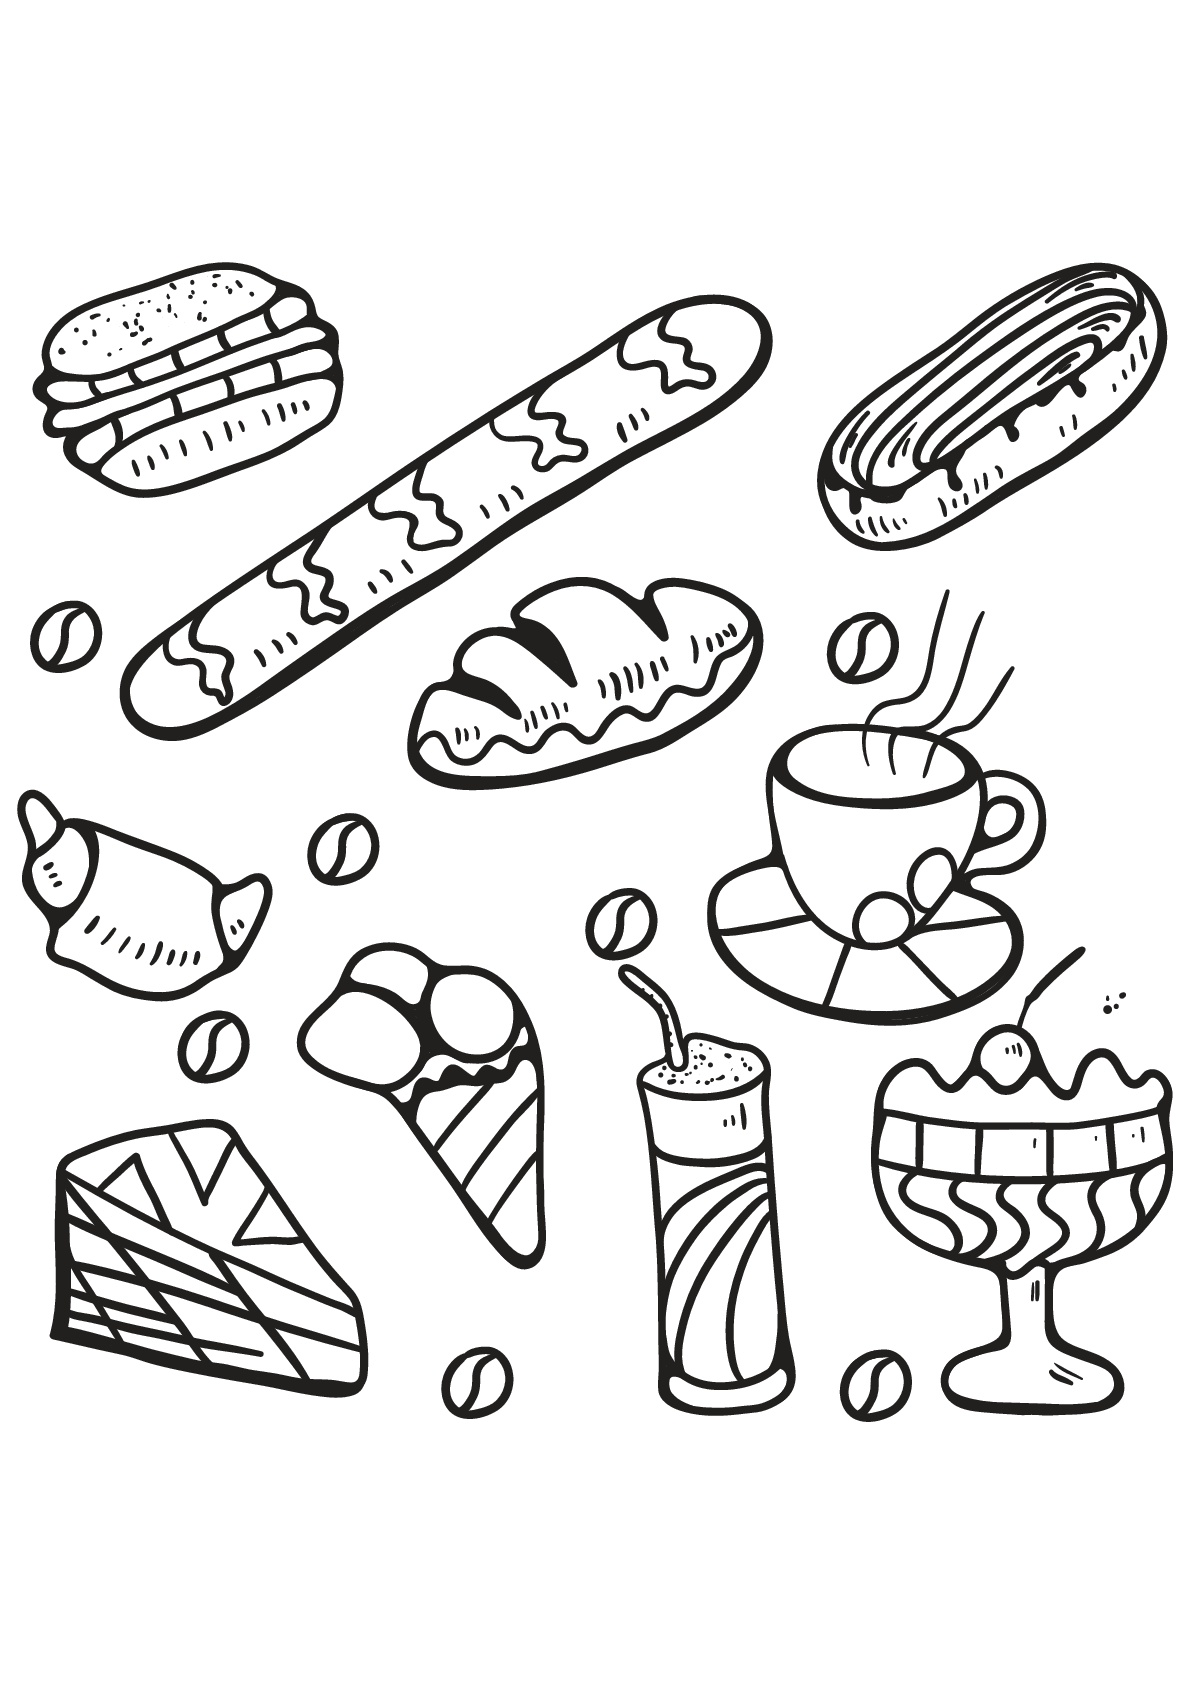 Food - Coloring Pages for Adults